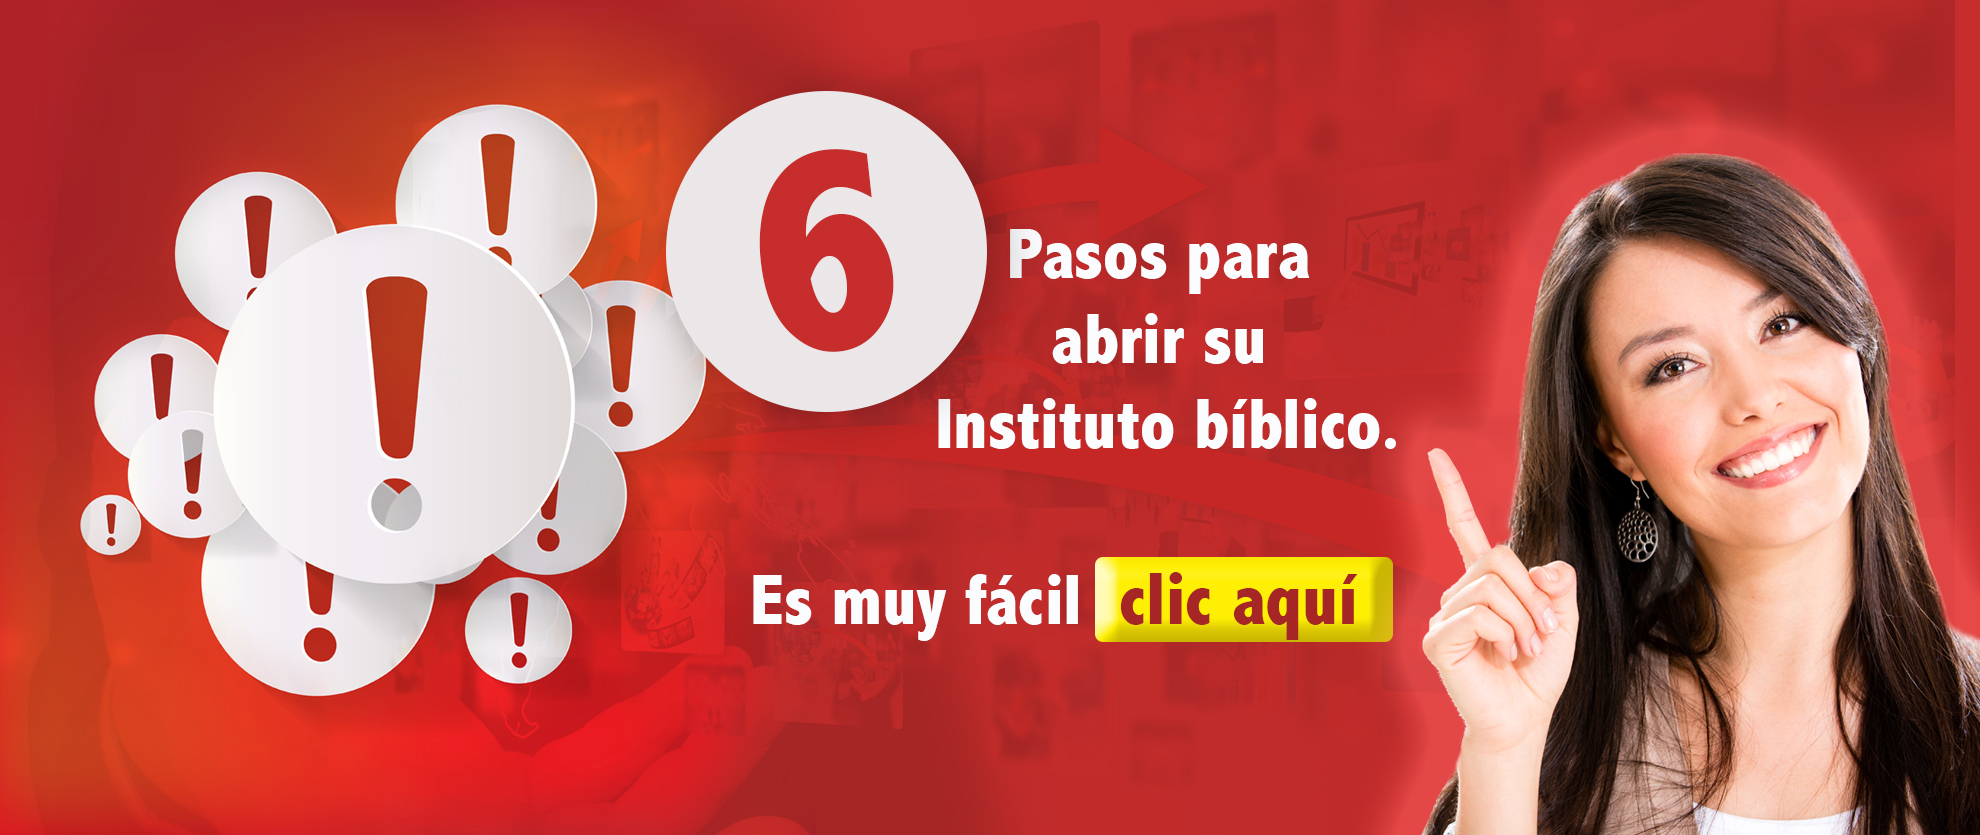 7.Institutoprincipal2017